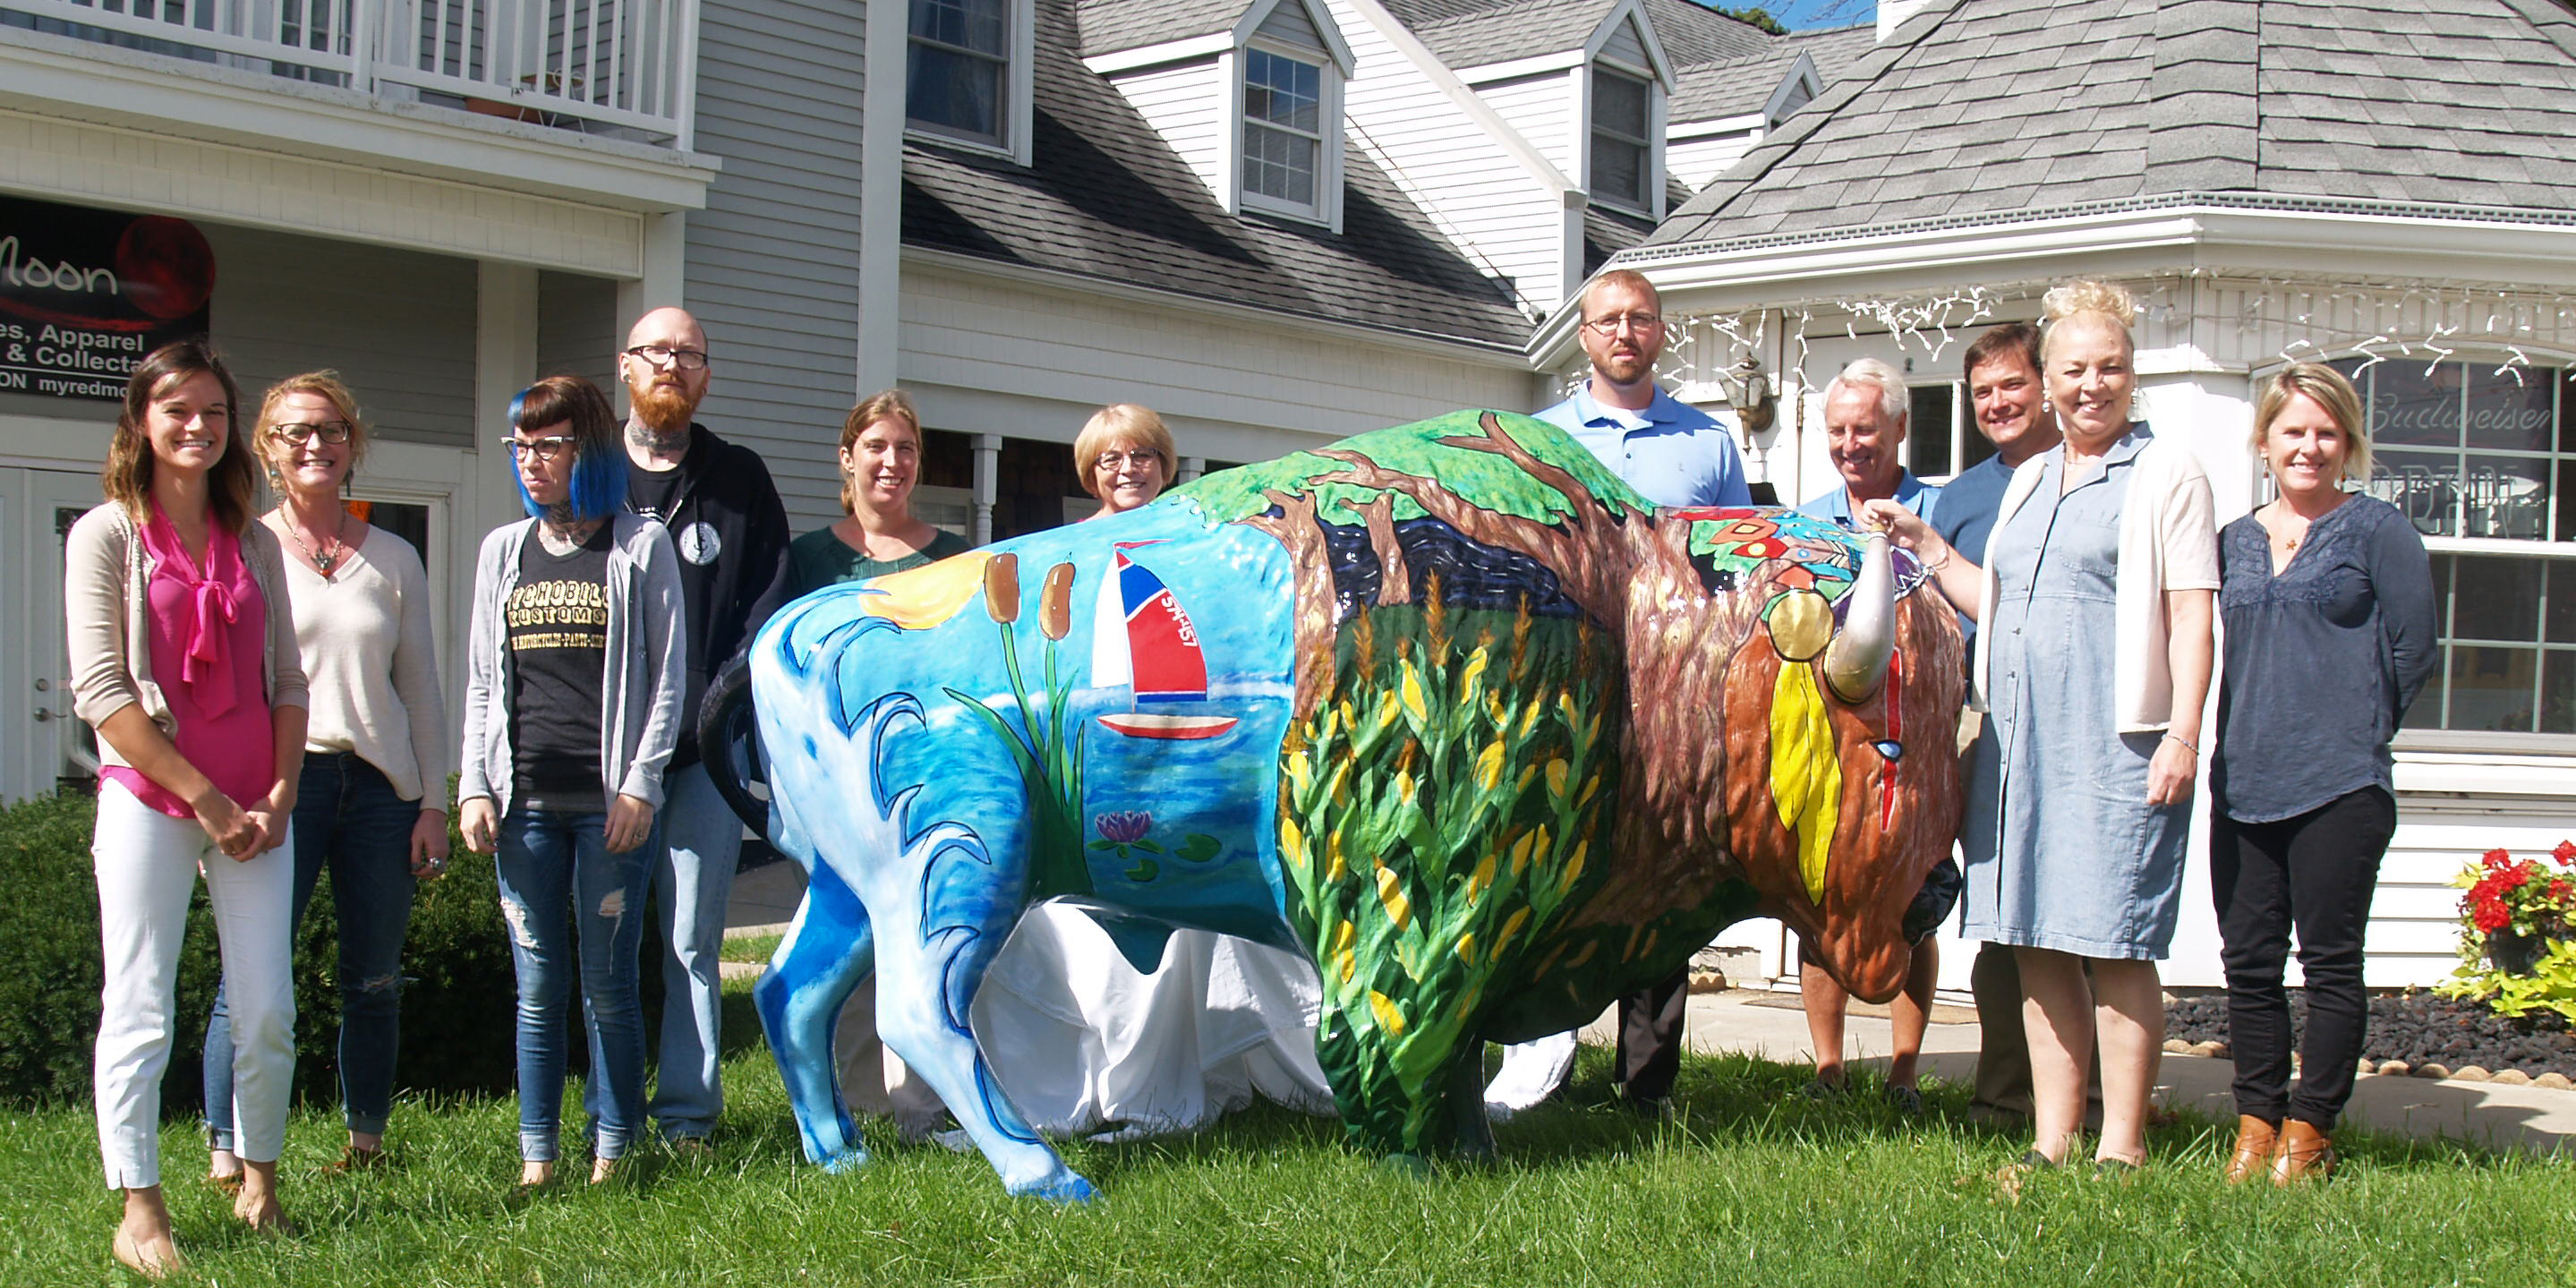 Pictured left to right: Andrea Keller, Syracuse-Wawasee Chamber of Commerce, Kristi Martin, The Chrome Lens Photography, Jessica Foster, Resident Artist, Shane Yoder, Anchor Down Tattoo, Megan McClellan, Syracuse-Wawasee Trail, Jeri Yoder, Lake City Bank, Erick Leffler, Dynamic Spine and Rehabilitation Center, David Mayer, Retired Business Owner, Jack Birch, Birch Law Firm, Sylvia Gargett, Northern Lakes Insurance and Kristy Rumfelt, Beyond Landscaping. Not pictured: Nicole Freiburger, Tranter Graphics.